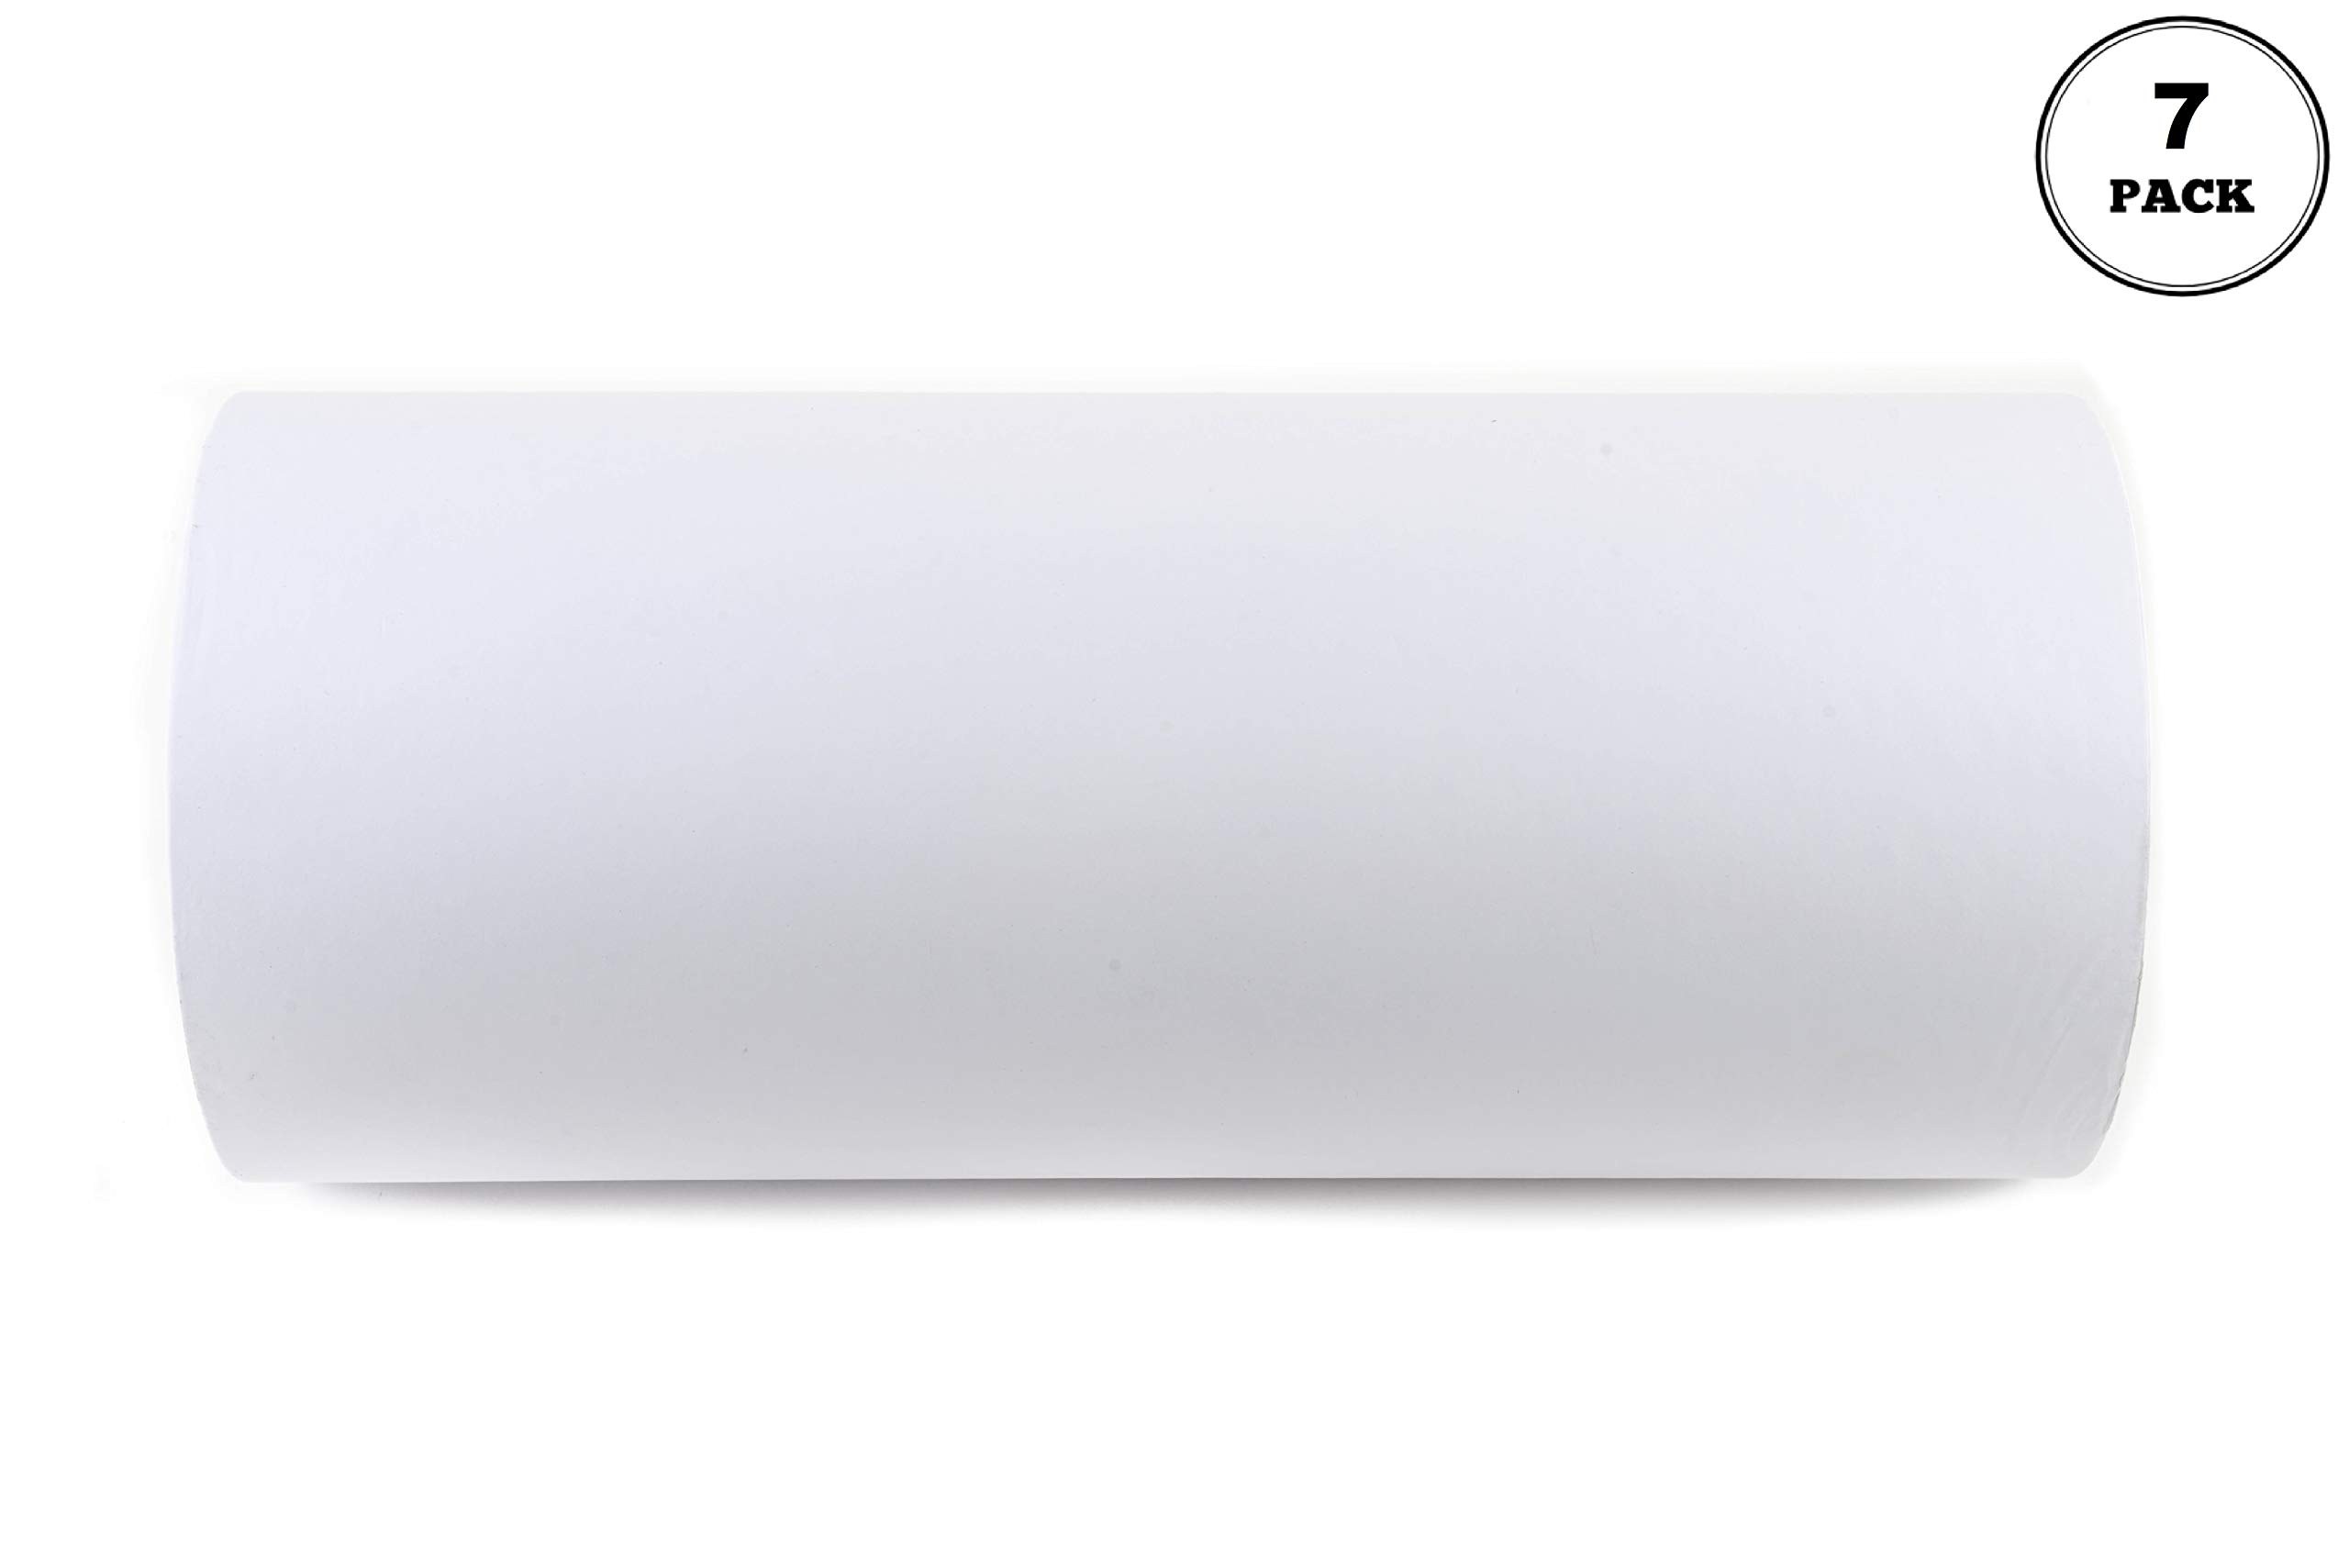 [7 Pack] EcoQuality Butcher Paper 15'' x 1000 ft - Roll for Butcher, Freezer Paper Great for Restaurants, Food Service, Butcher Paper, Meat Paper, Freezer Roll, Butcher Roll, MG15